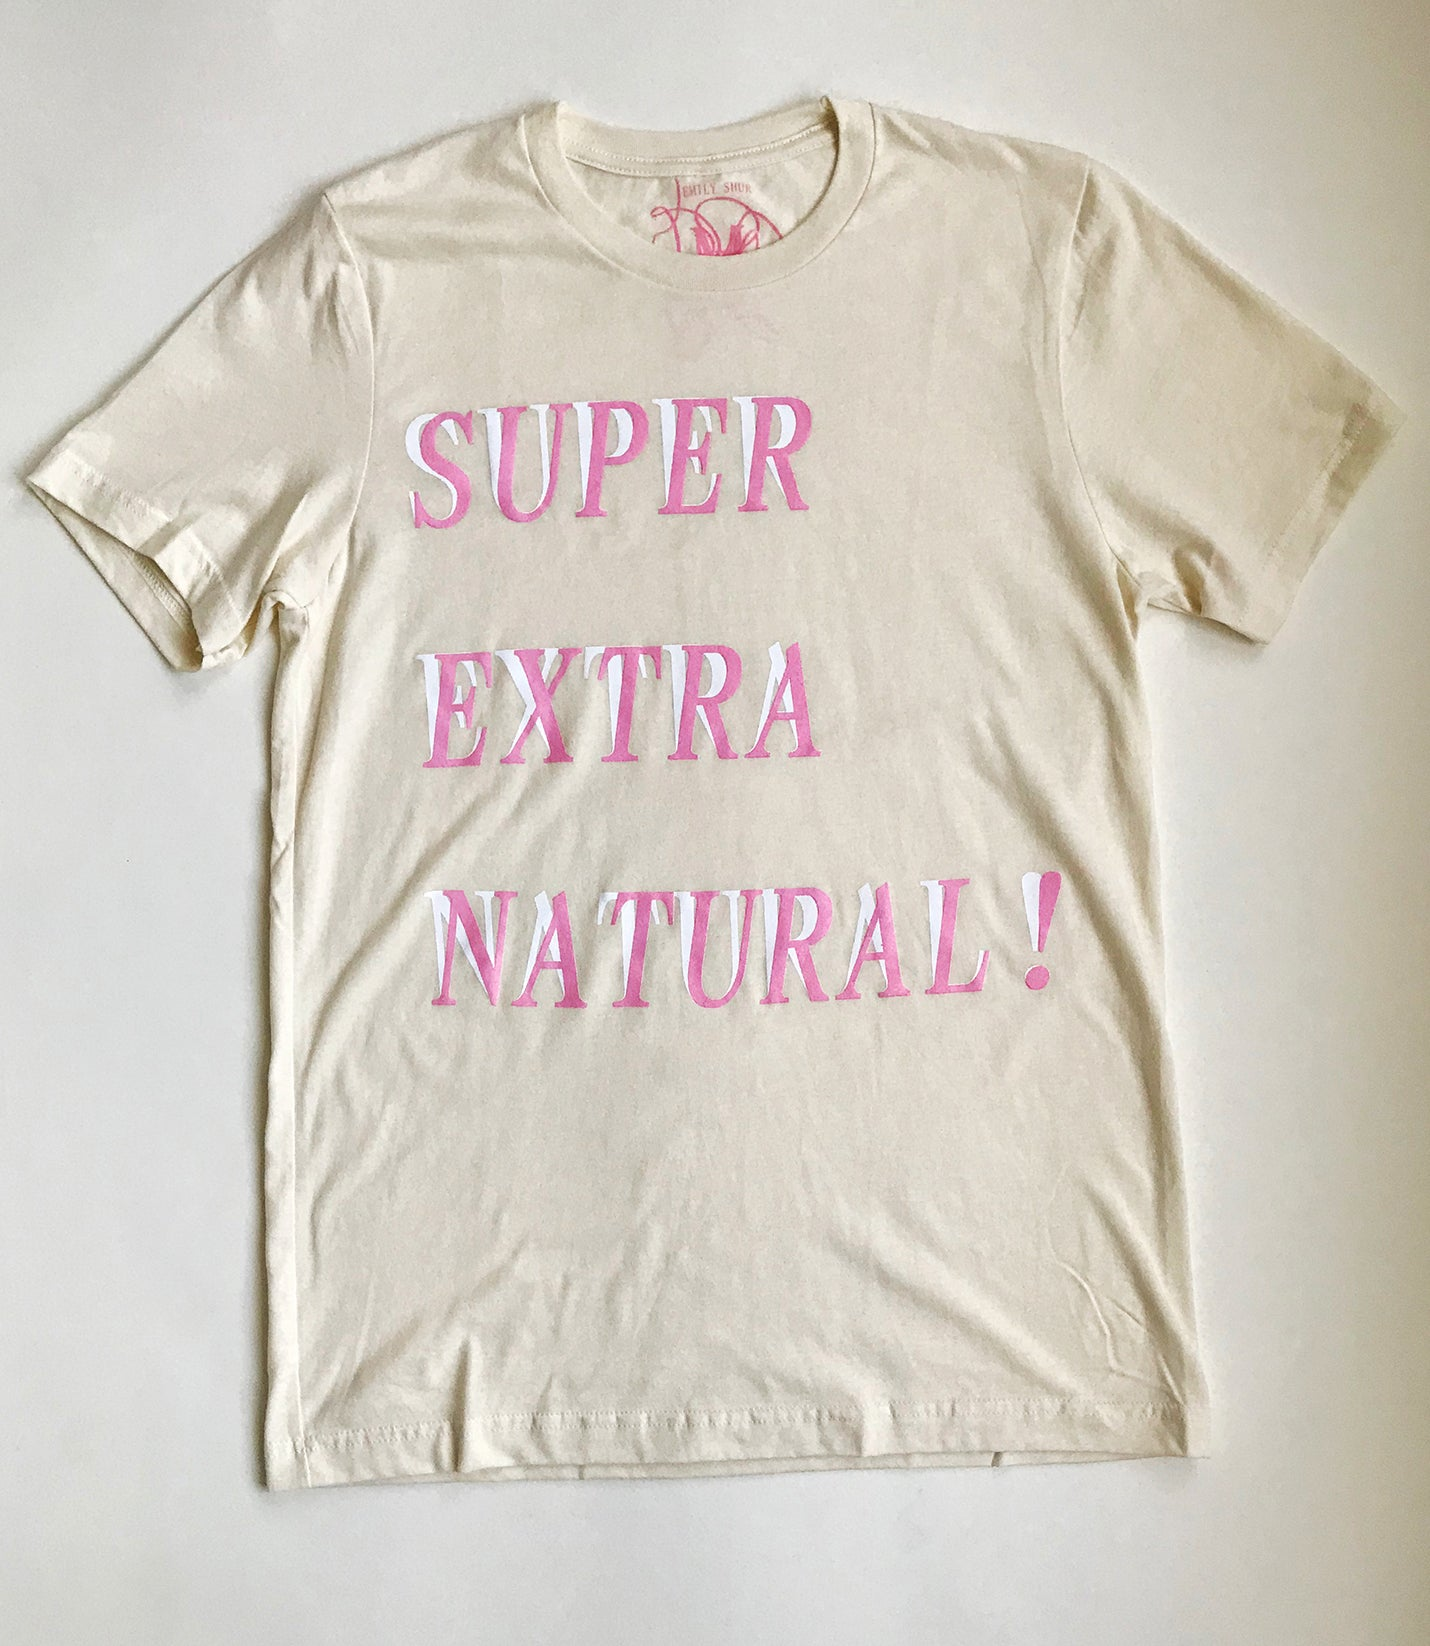 Image of Super Extra Natural! Shirt